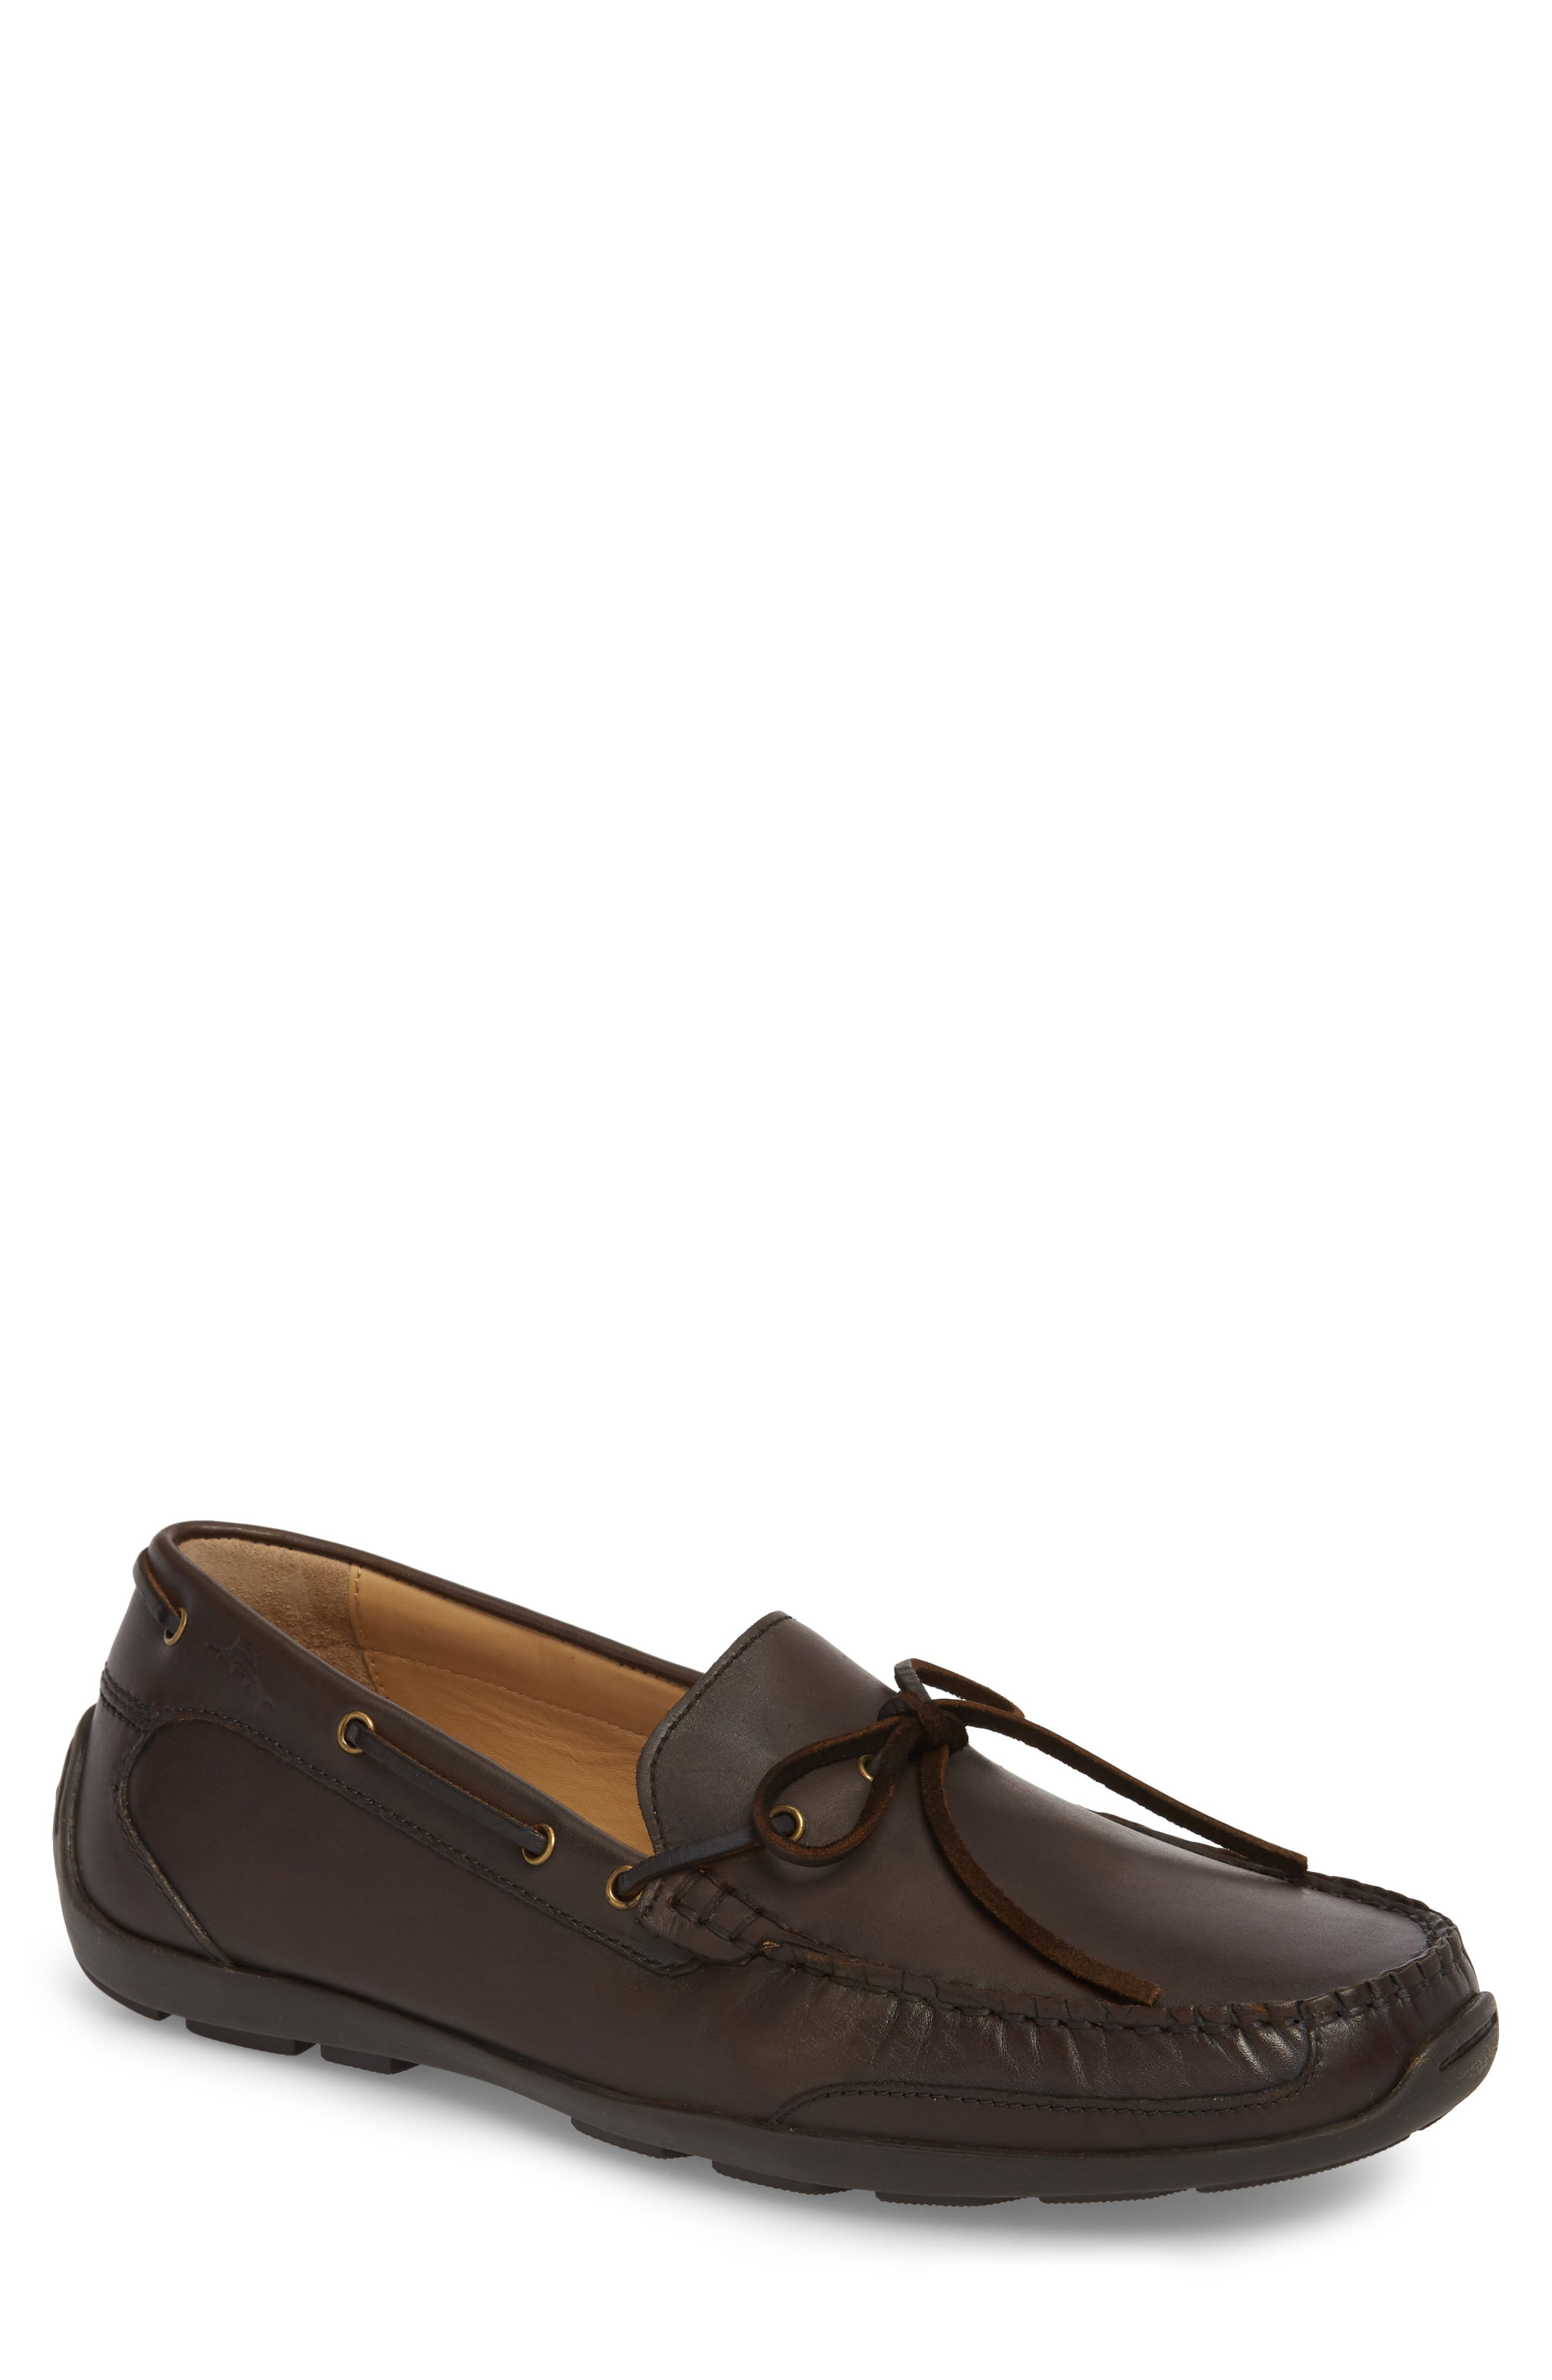 Tangier Driving Shoe,                         Main,                         color, Medium Brown Leather